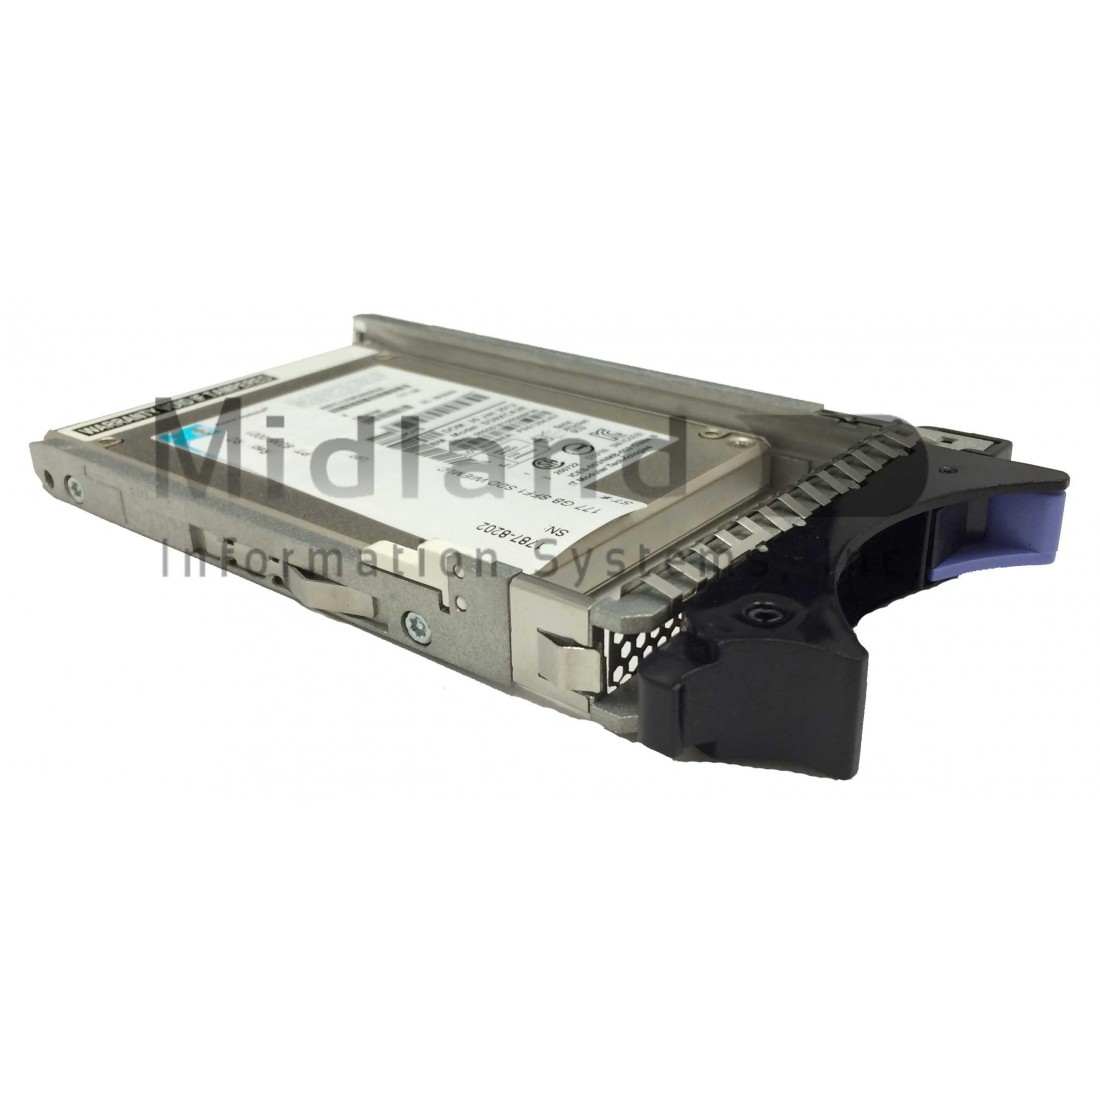 IBM 1787 177GB Solid State Drive SFF-1 SAS SSD for iSeries